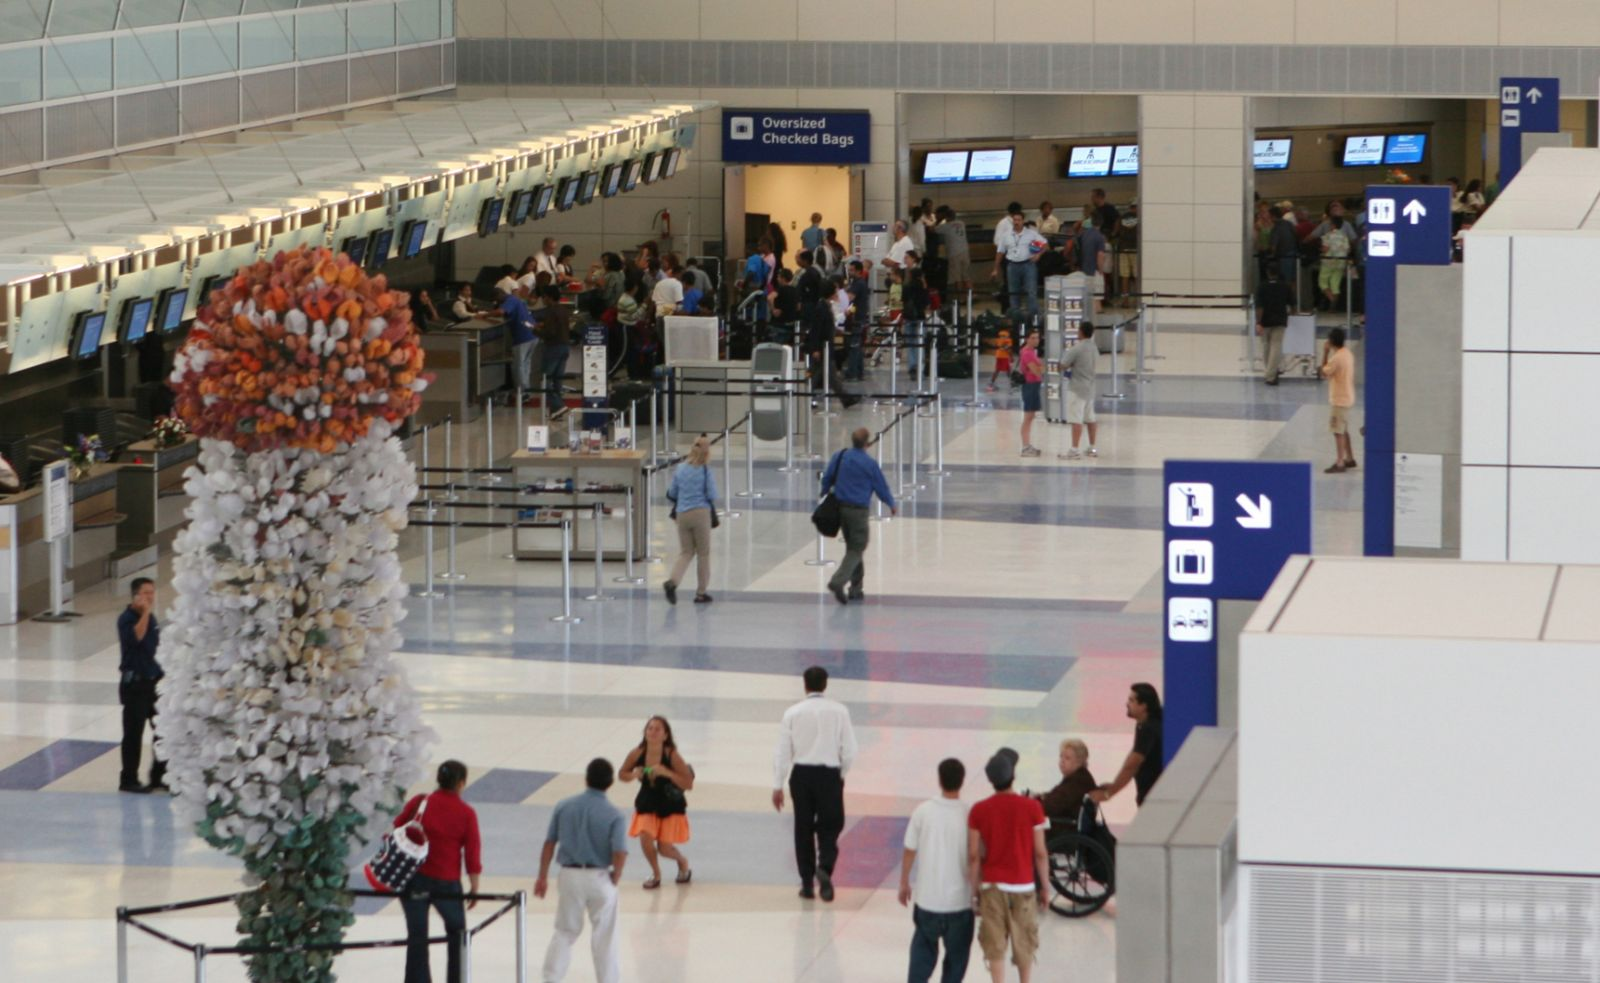 ACUS technology Is Helping Perth Airport Reduce The Passenger Processing Cost By 25%